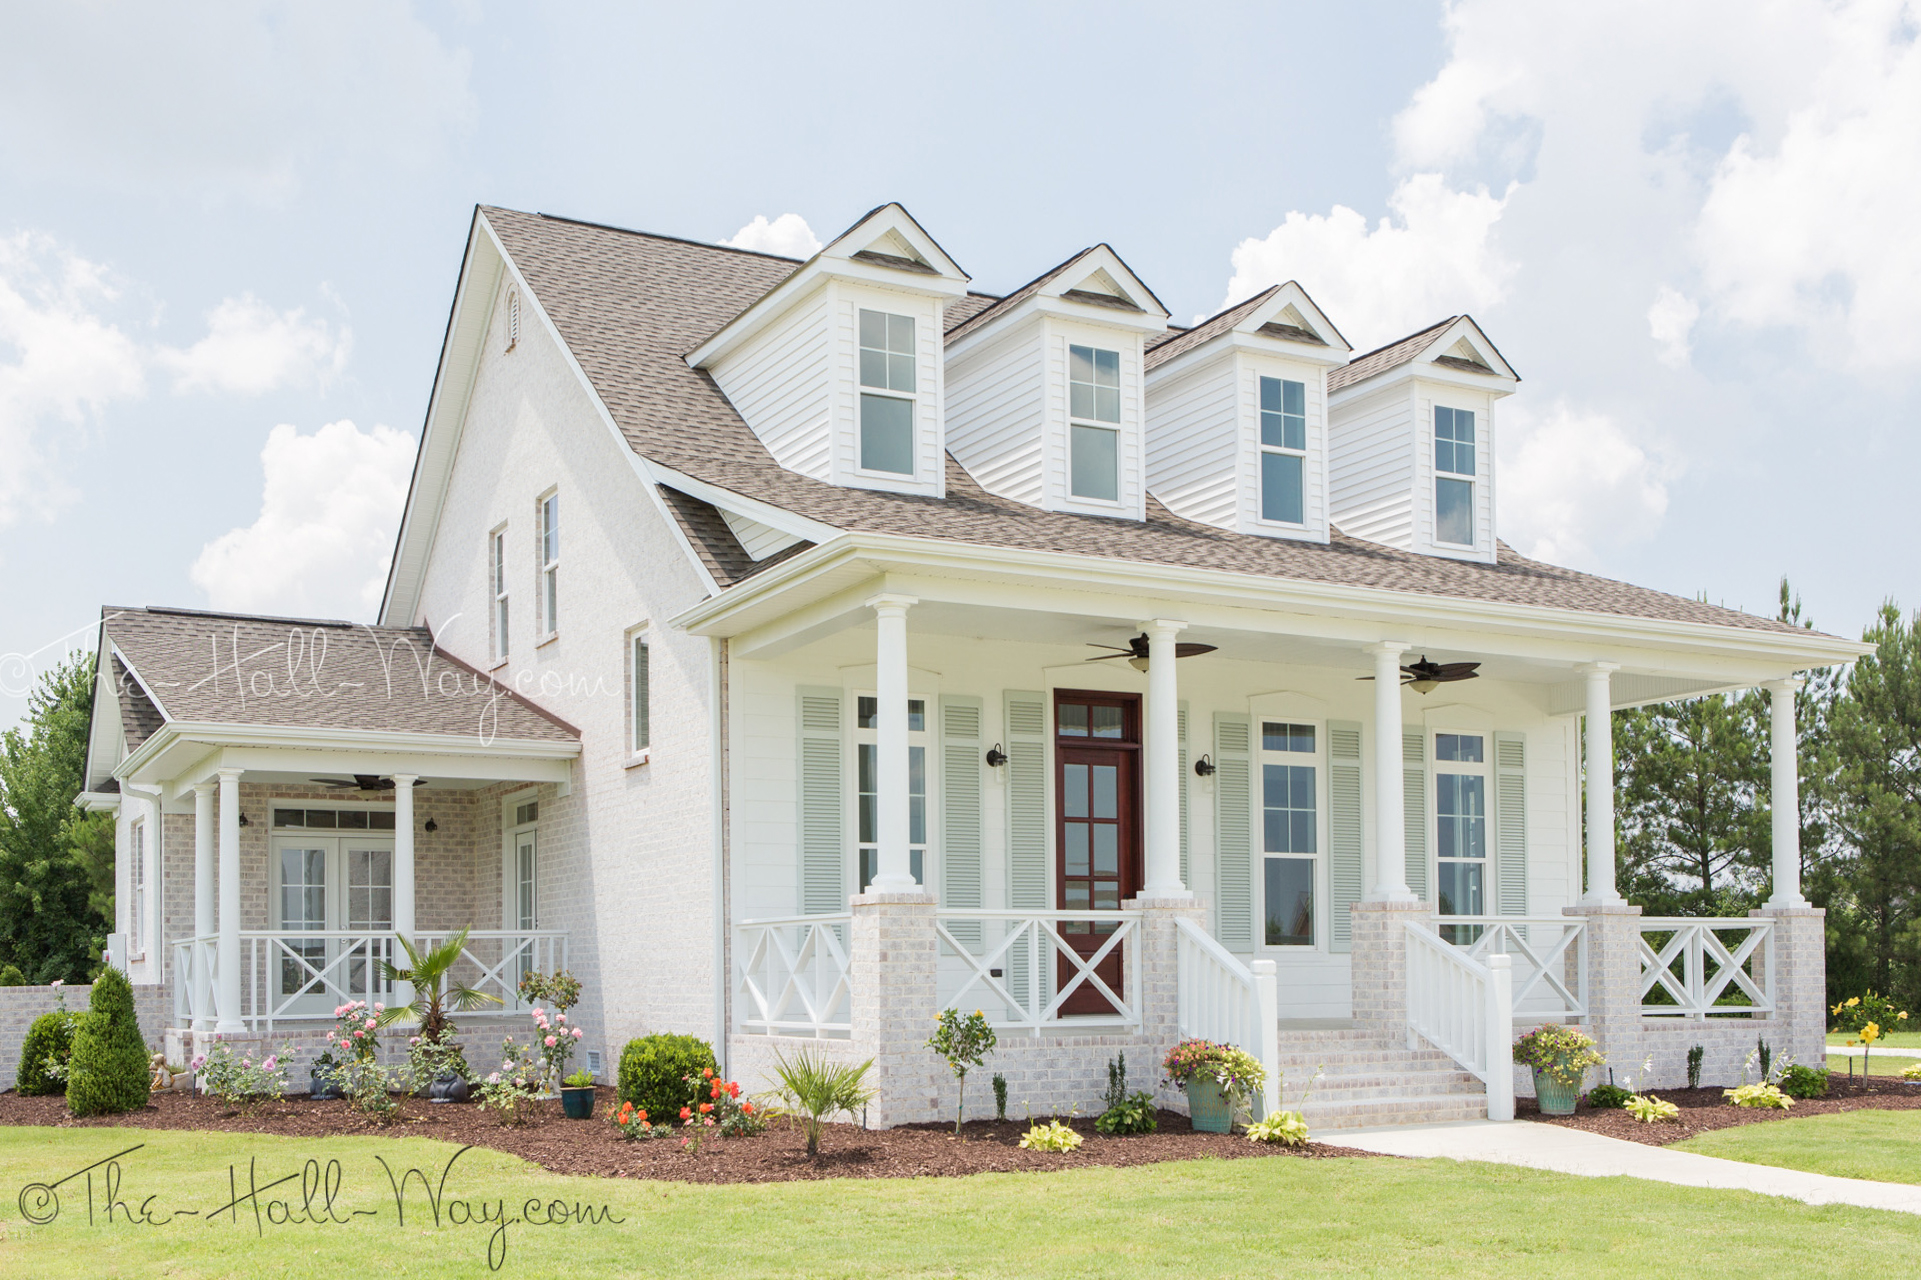 Southern living house plans with pictures homesfeed for Southern cottage house plans with photos